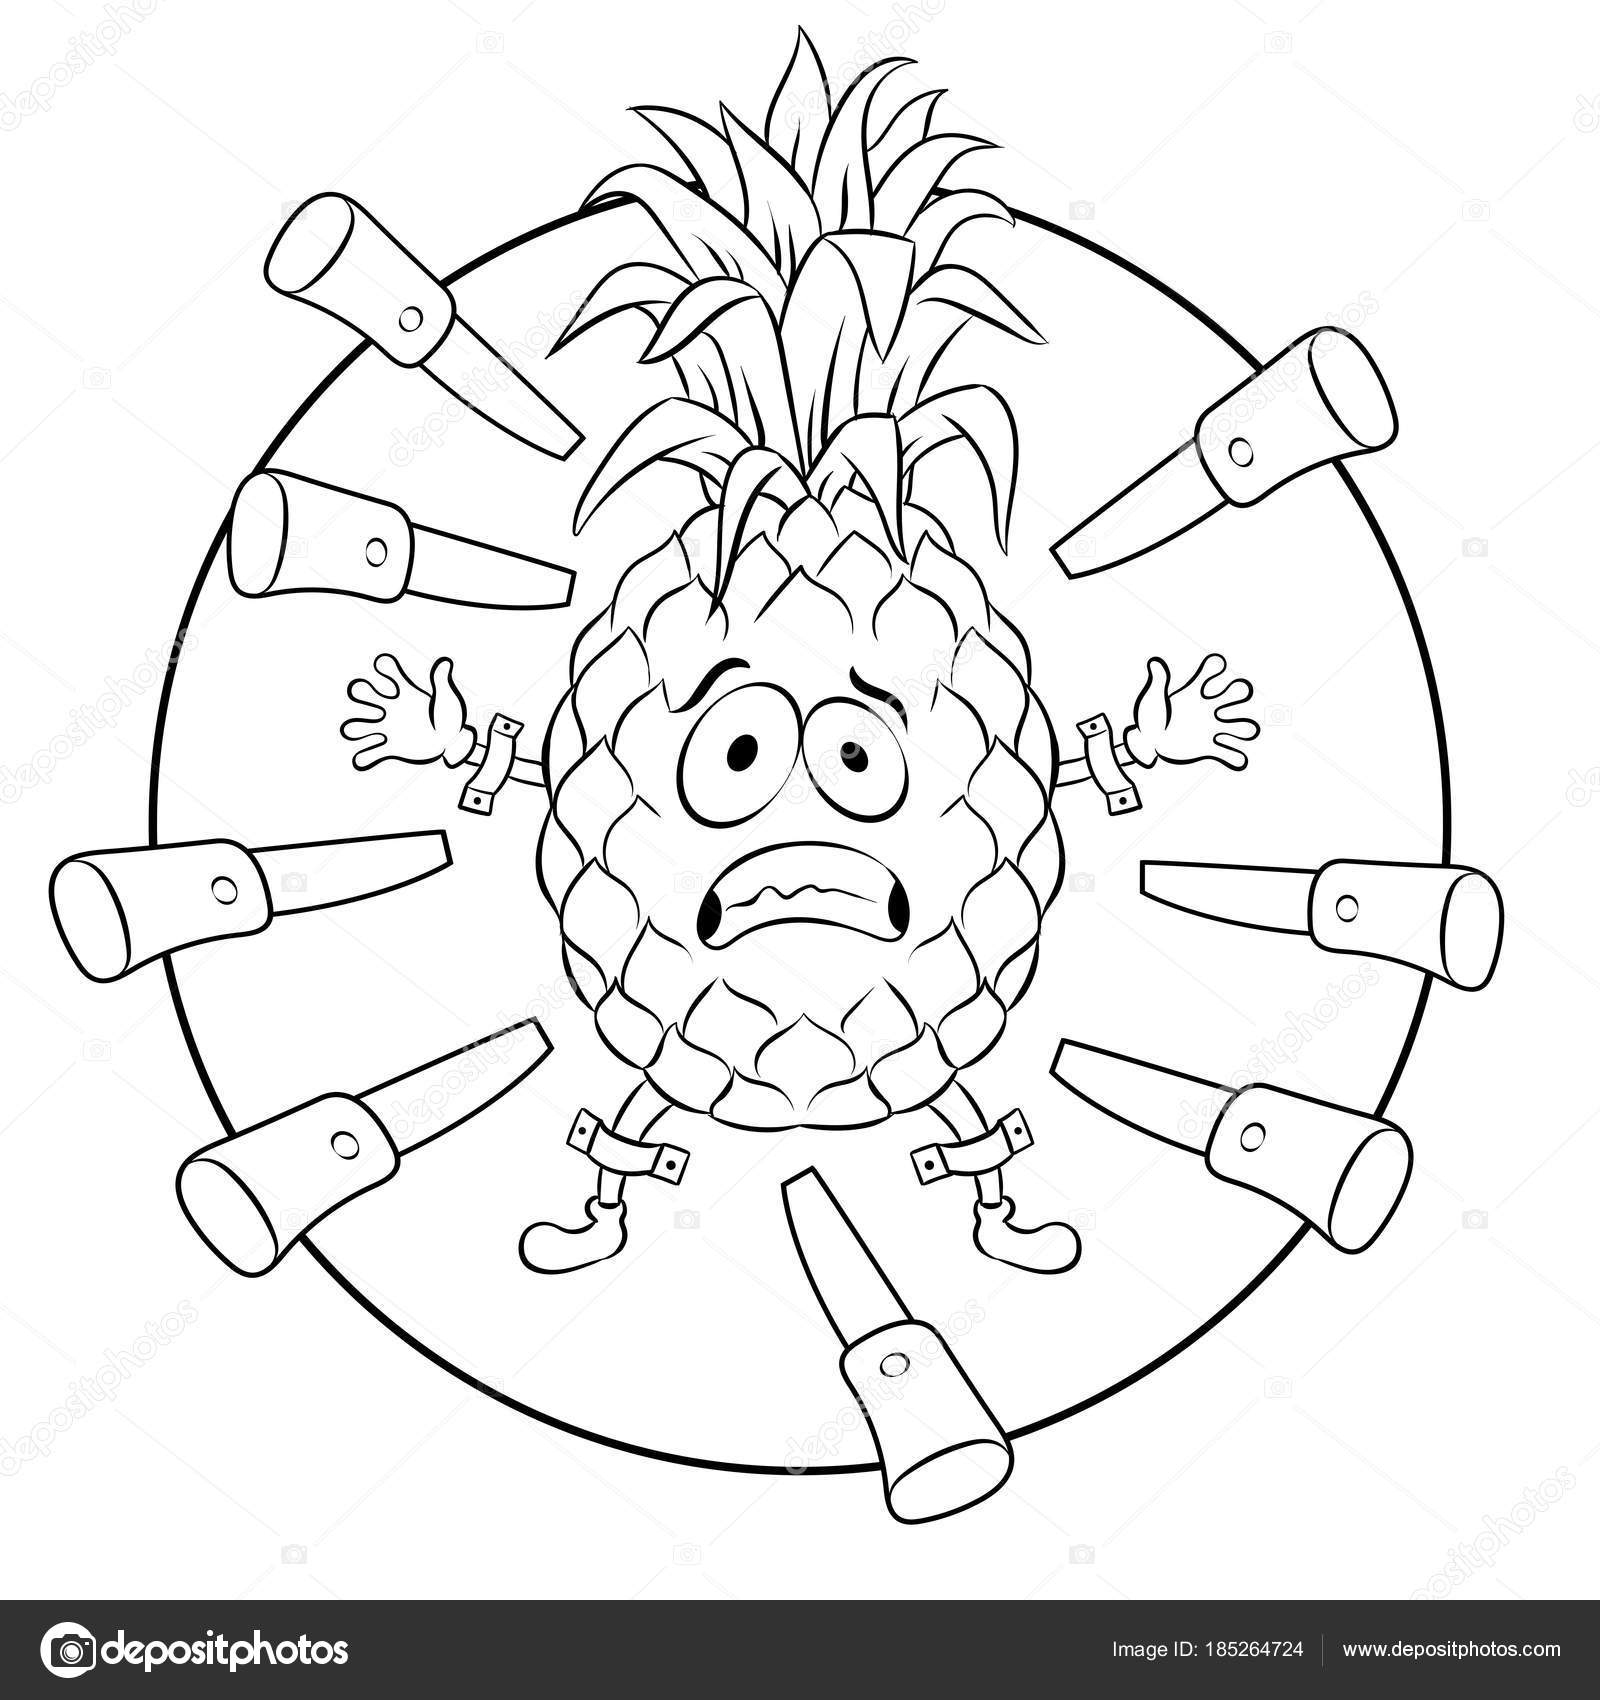 Pineapple target coloring book vector illustration — Stock Vector ...